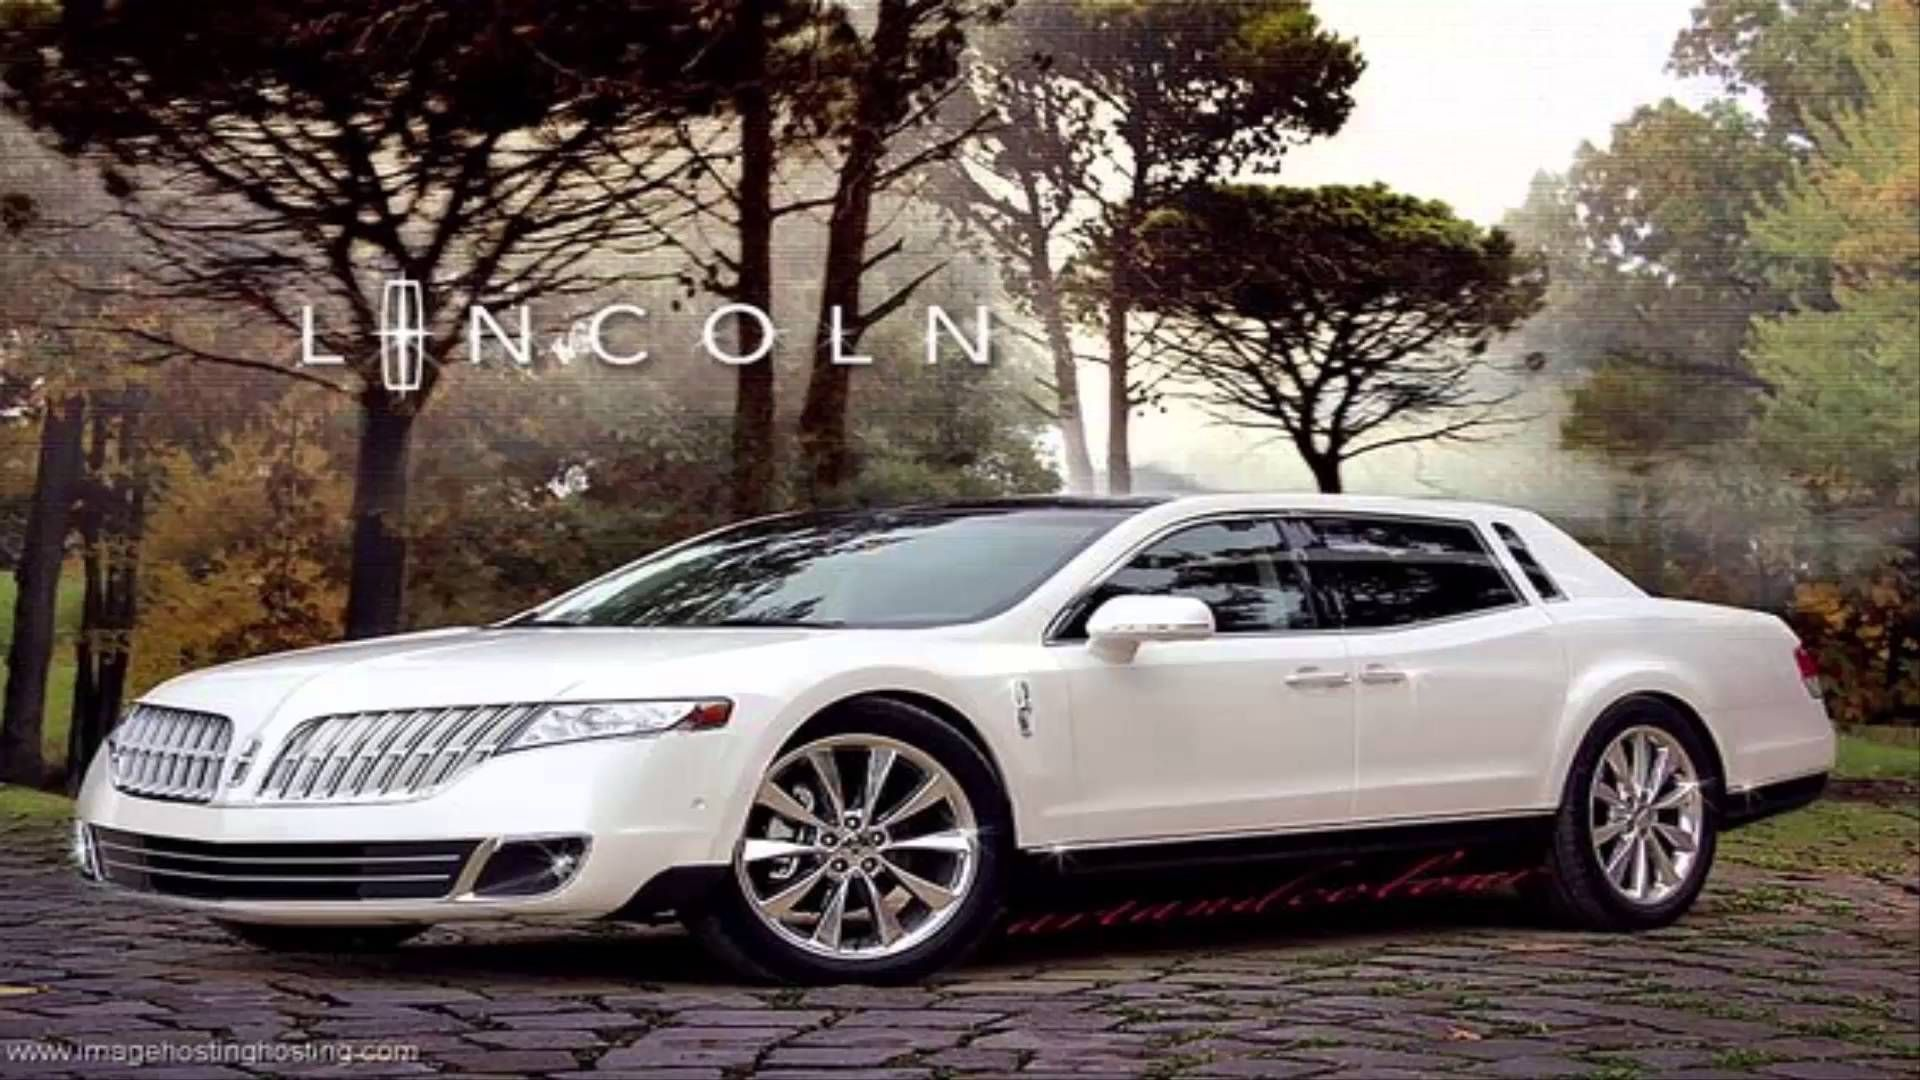 2016 Lincoln Town Car Photo Exterior And Interior